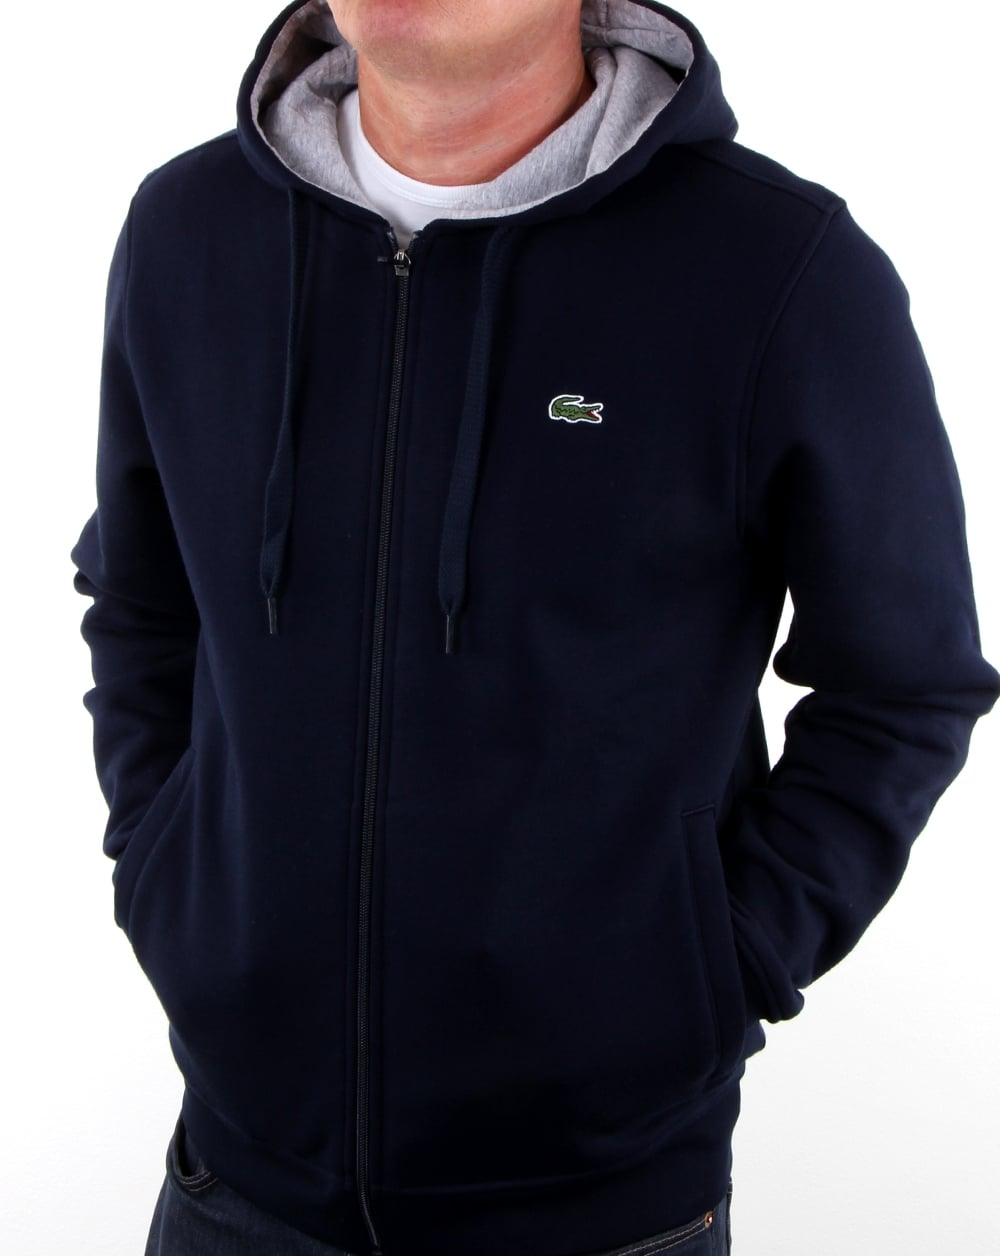 Lacoste Mens Long Sleeve Fleece with Full Zip and Pockets Sweatshirt